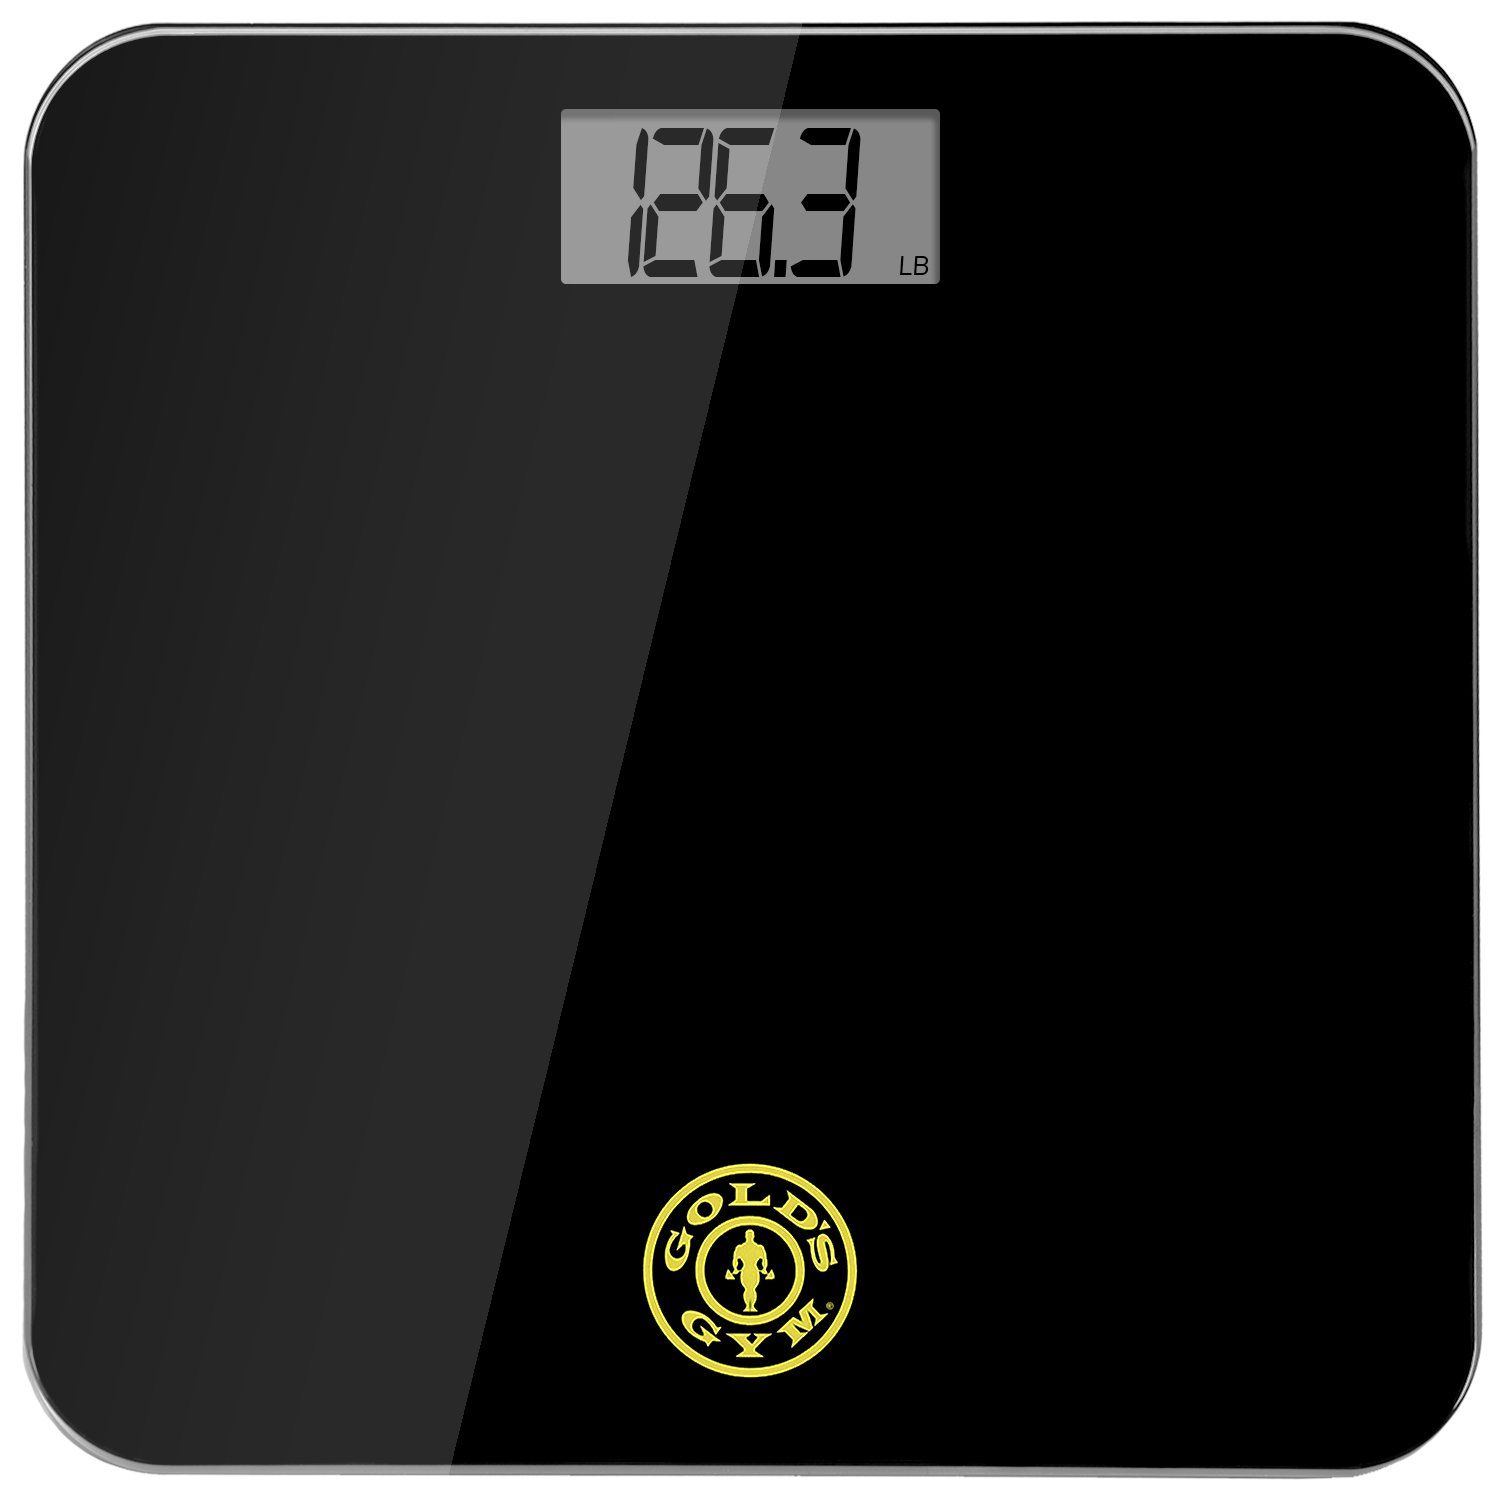 Gold's Gym Digital Tempered Glass Bathroom Body Weight Scale Highly Accurate LBS or KG, up to 400 Pounds Non Slip, Portable, Black